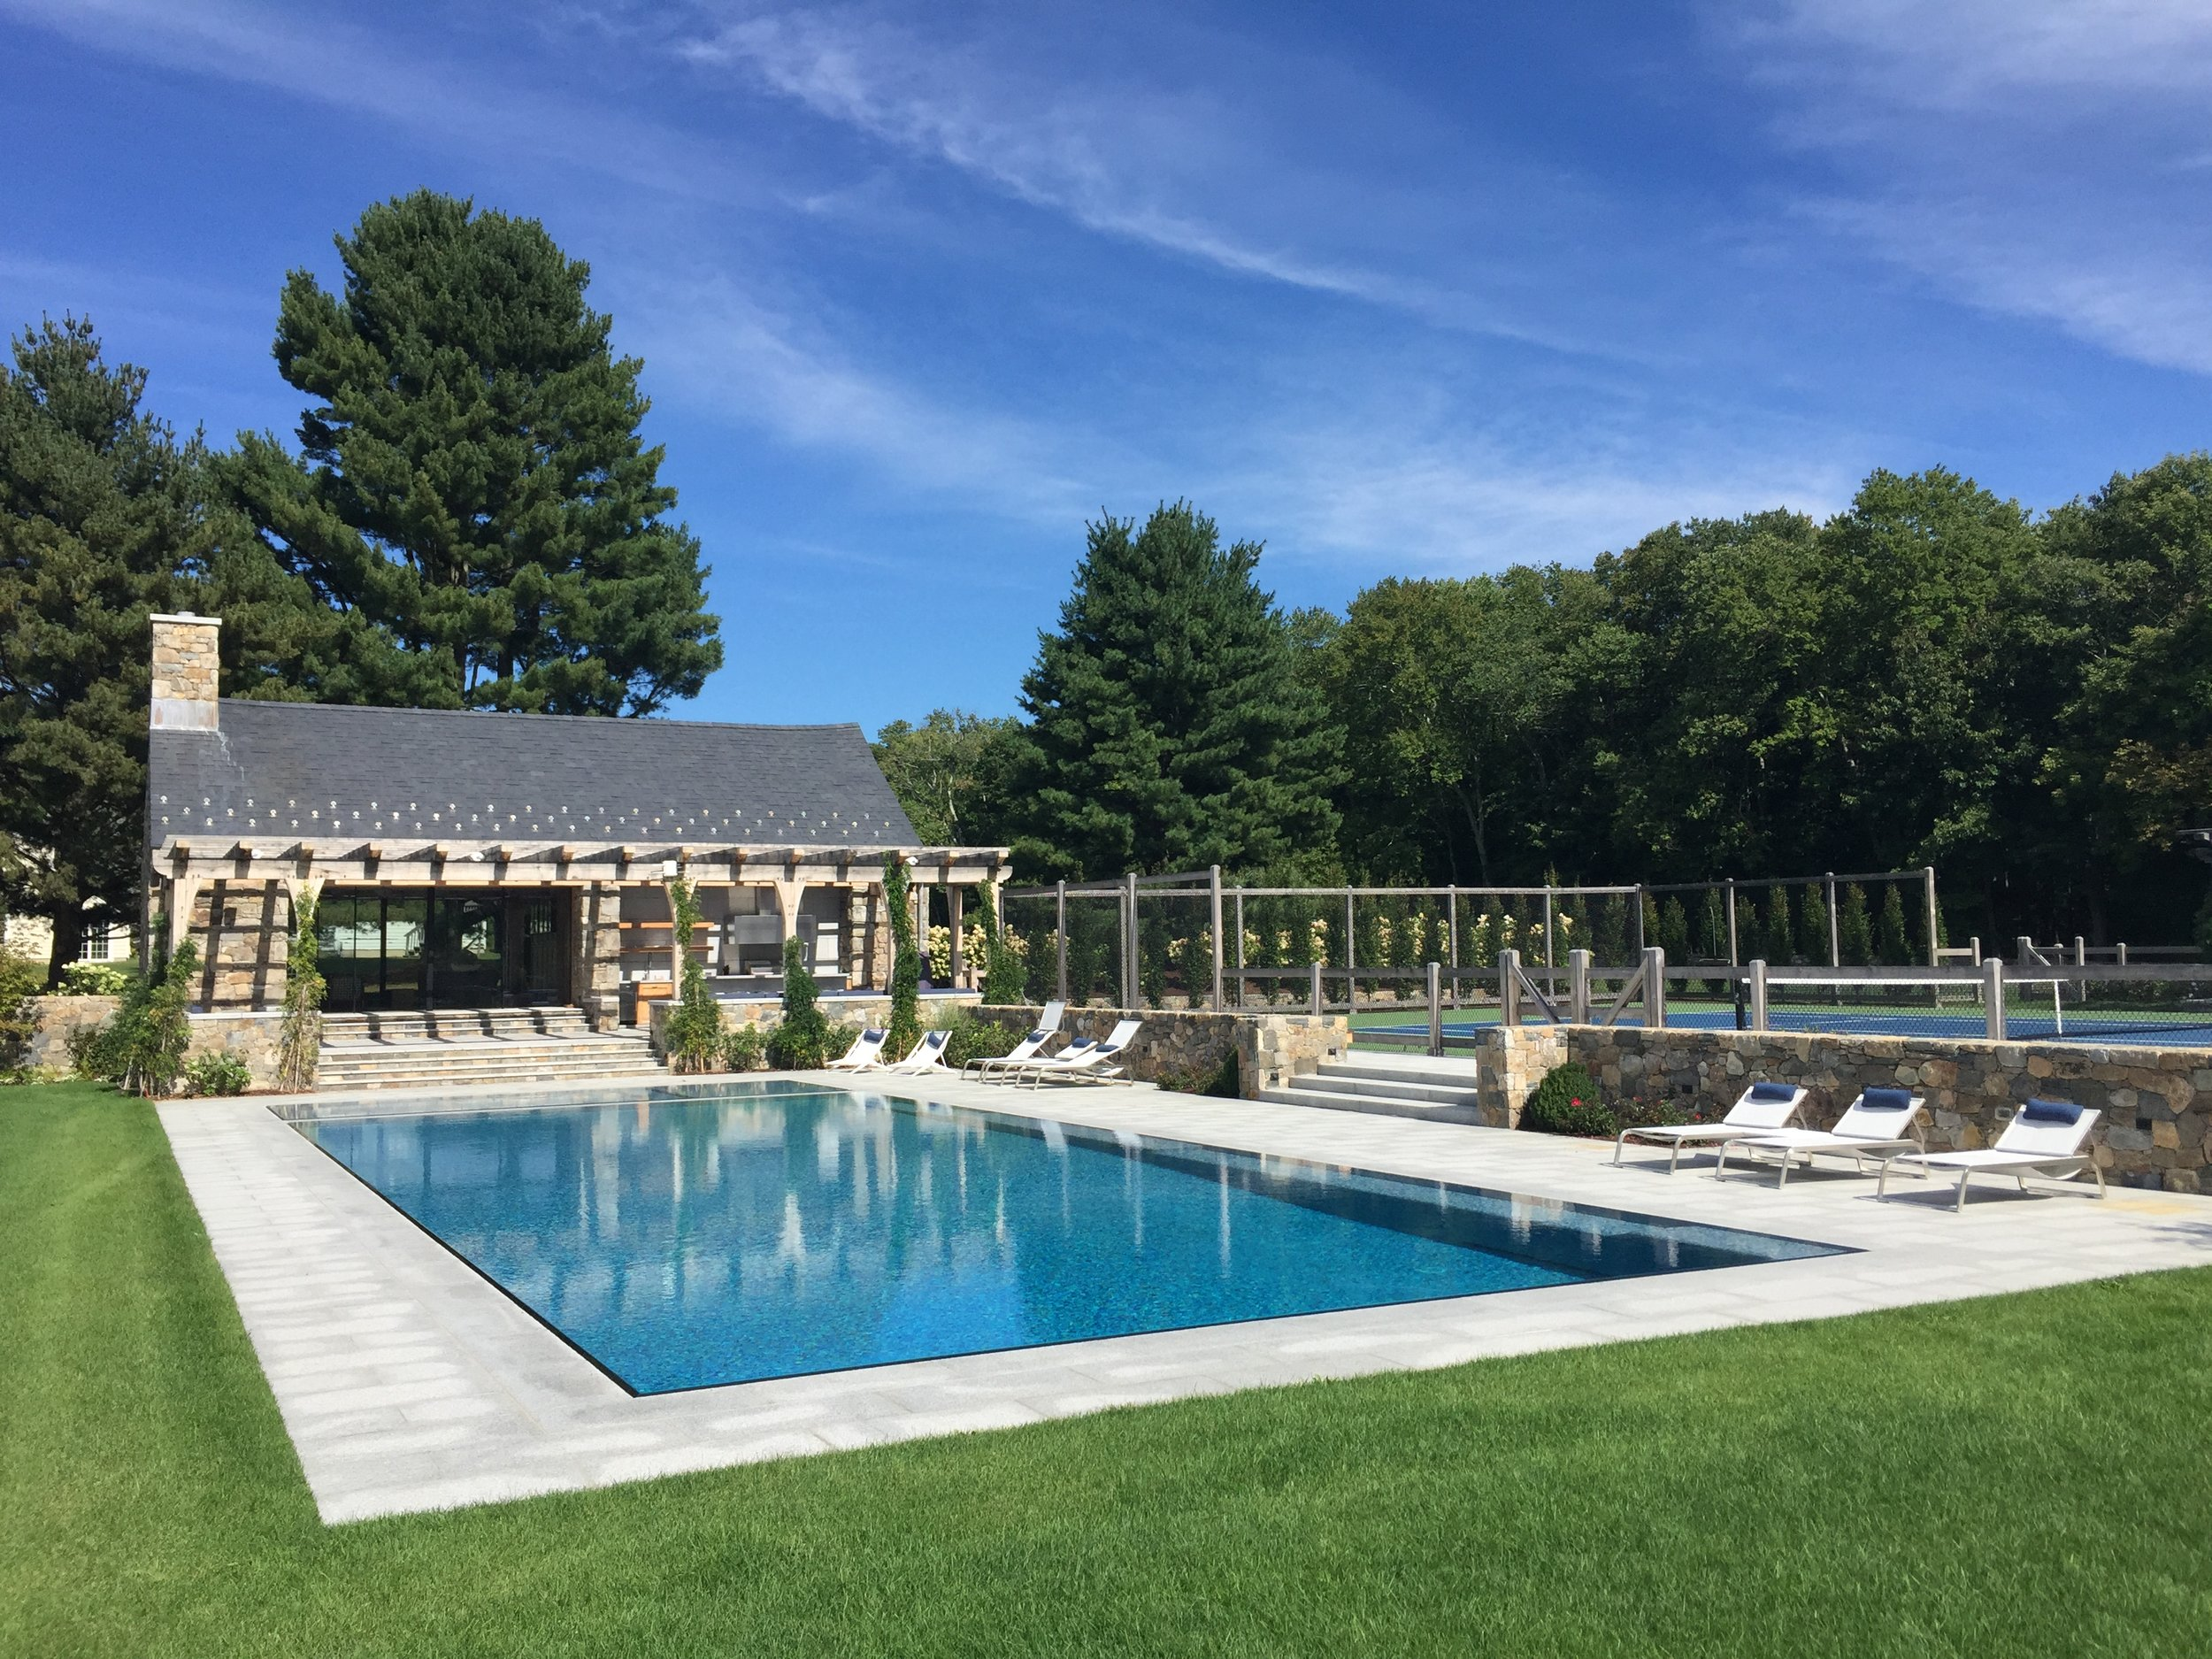 An adjacent tennis court's size and proportions were used to trigger the design of the pool and spa. Both watershapes feature knife-edge-slot, perimeter-overflow designs that give them the appearance of floating above the surrounding deck.